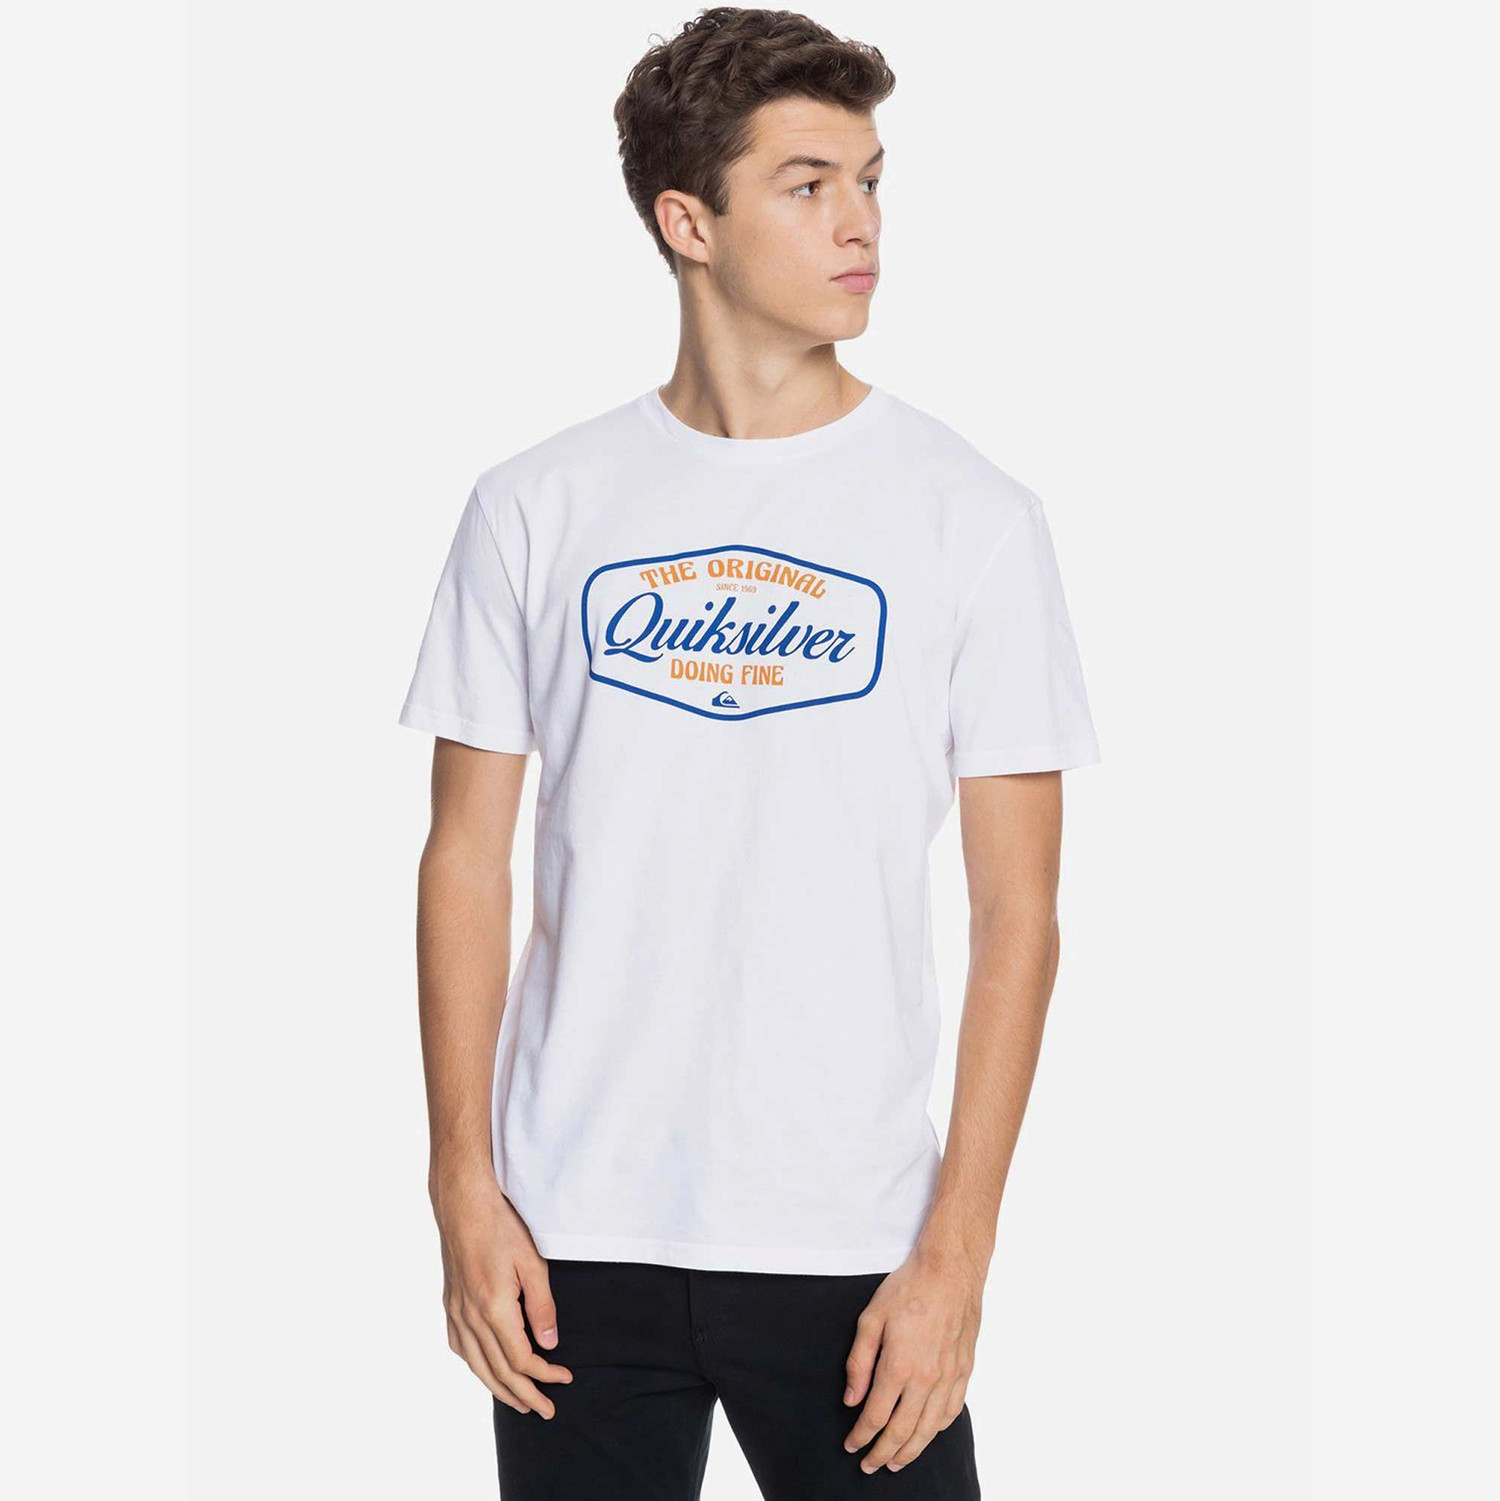 Quiksilver Cut To Now Ανδρικό T-Shirt (9000075663_1539)